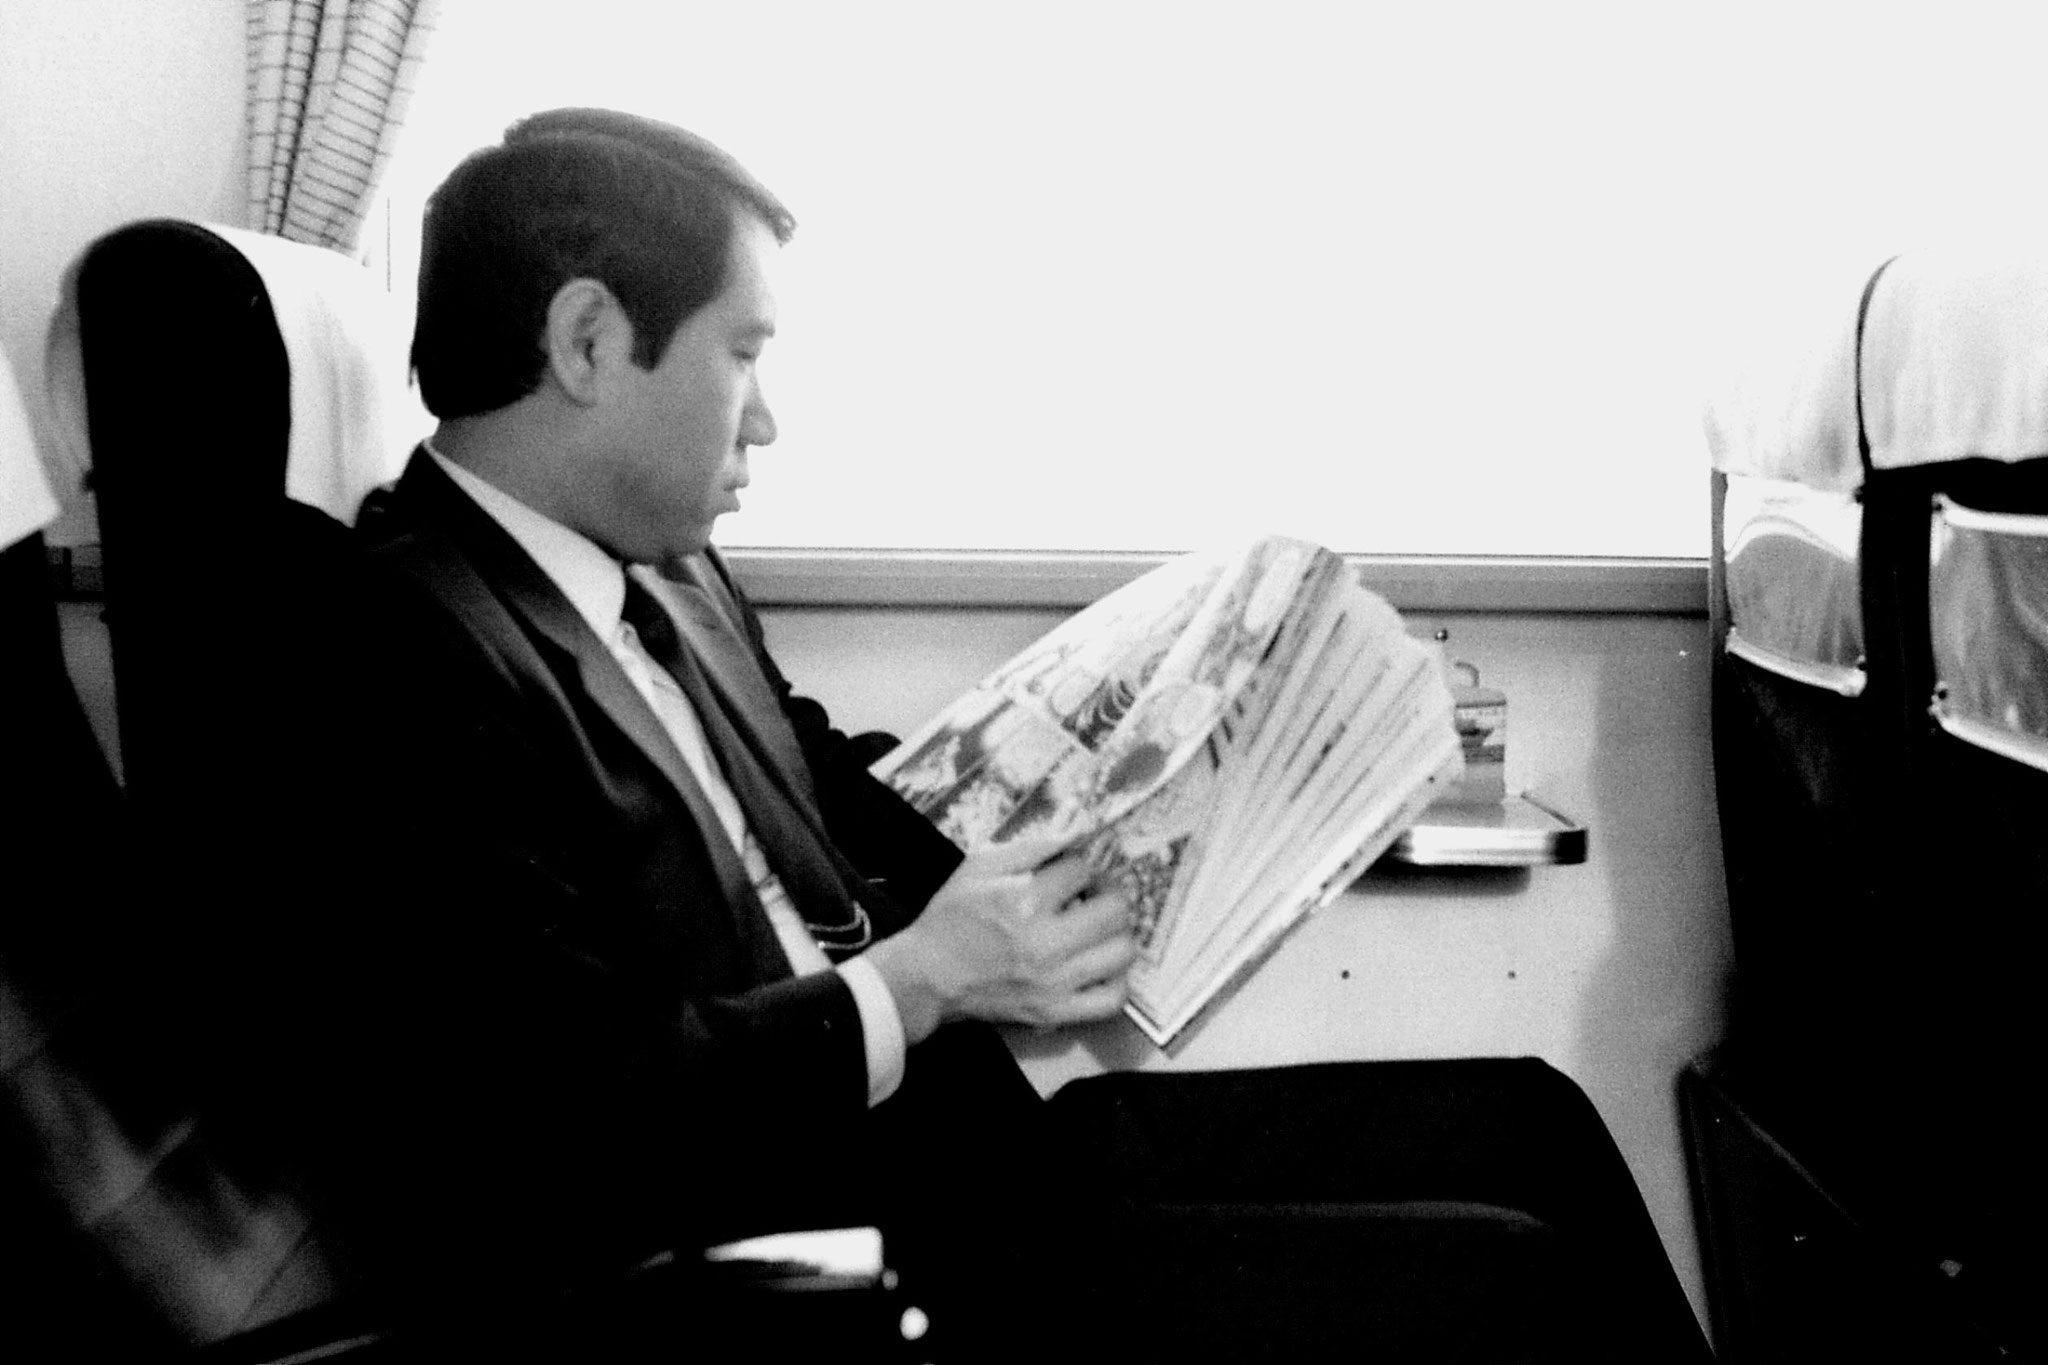 12/1/1989: 6: train to Kamakawa, man reading comic